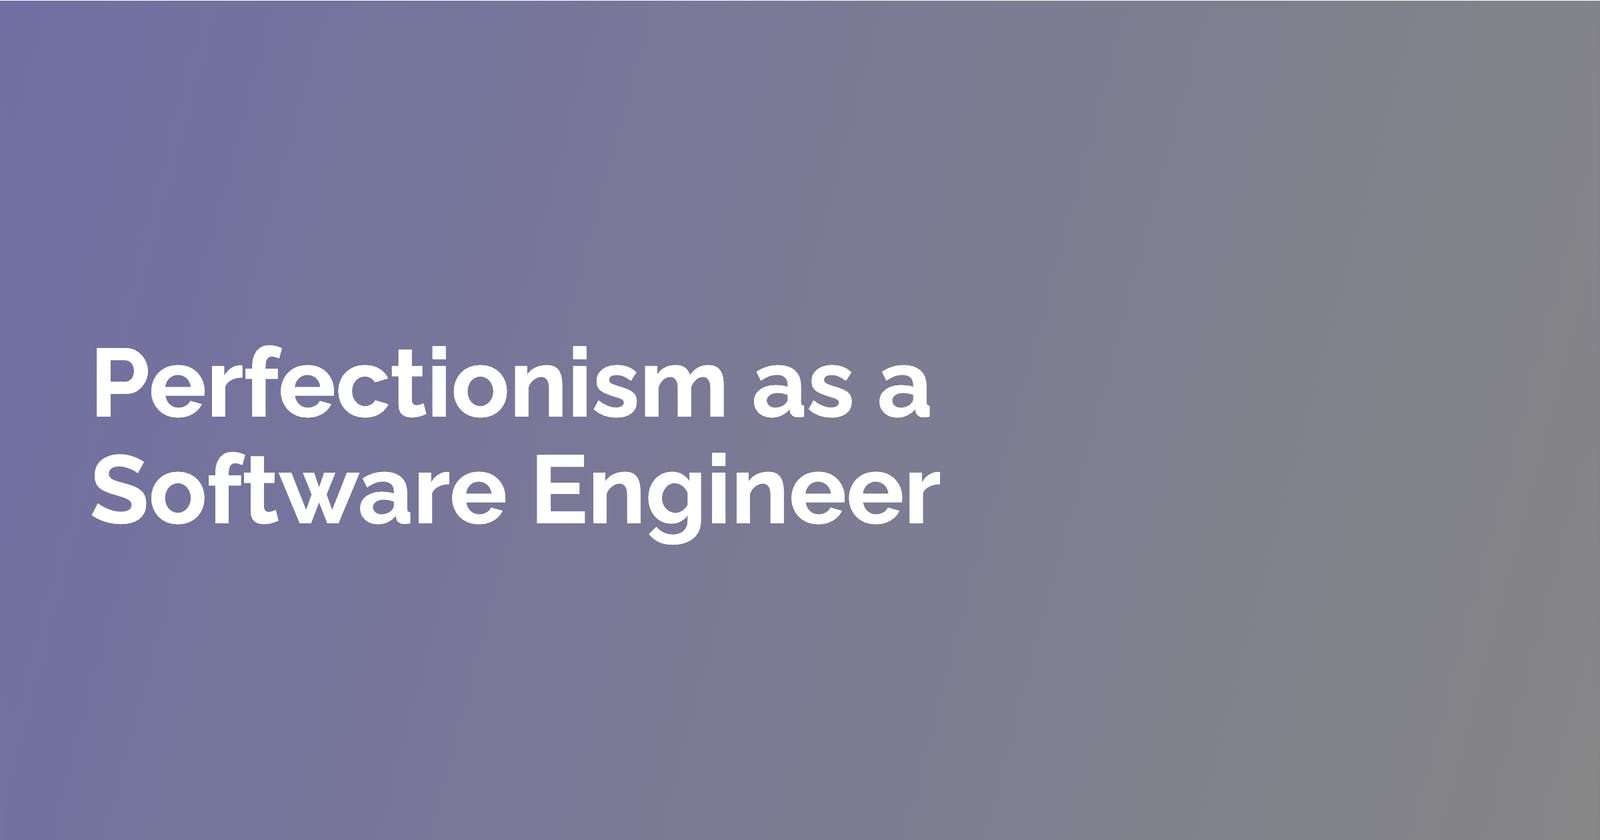 Perfectionism as a Software Engineer